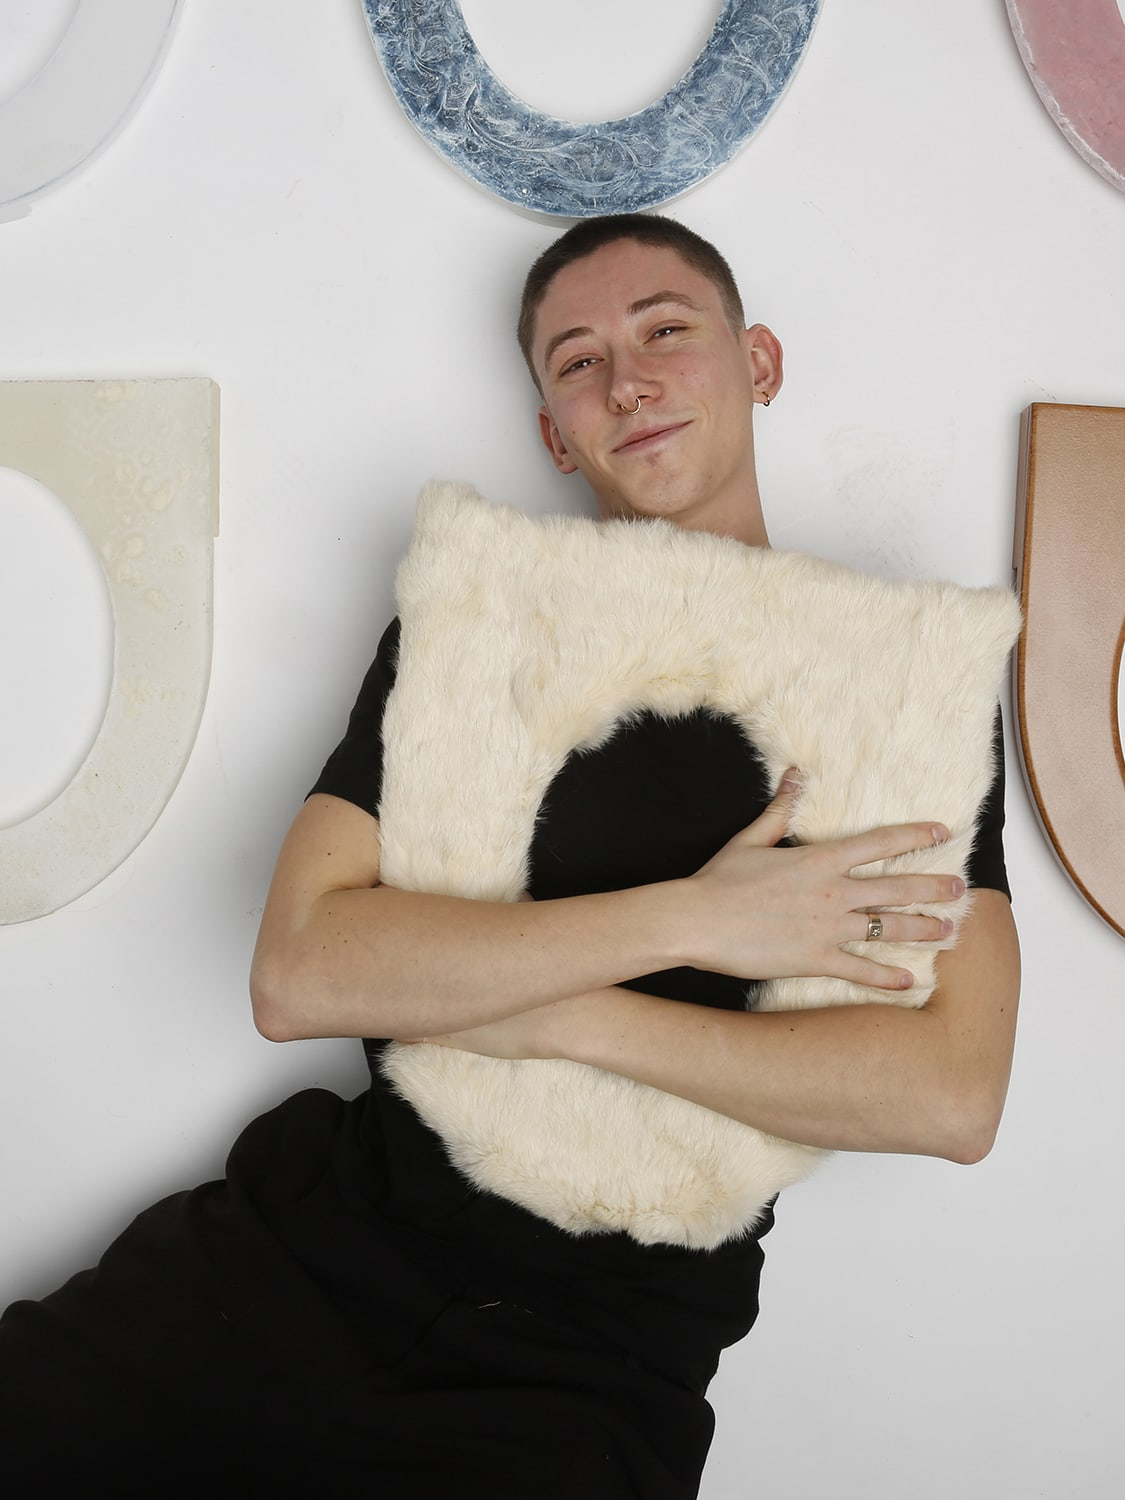 Photograph of a man holding a furry object similar to the shape of a toilet seat